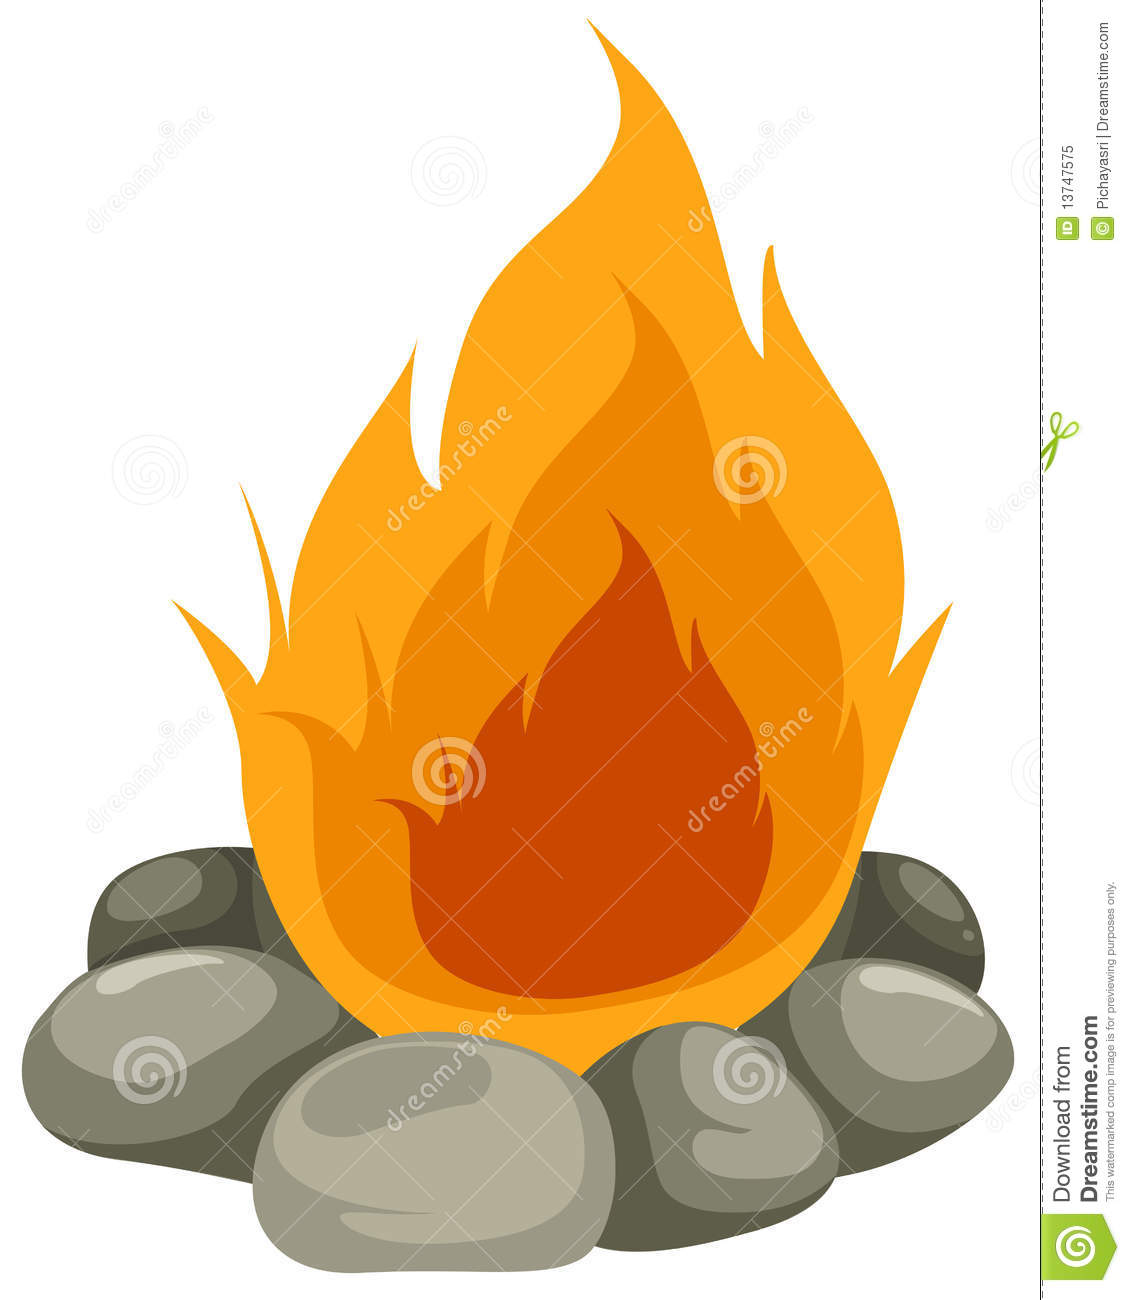 Campfire Clipart - Clipart Kid